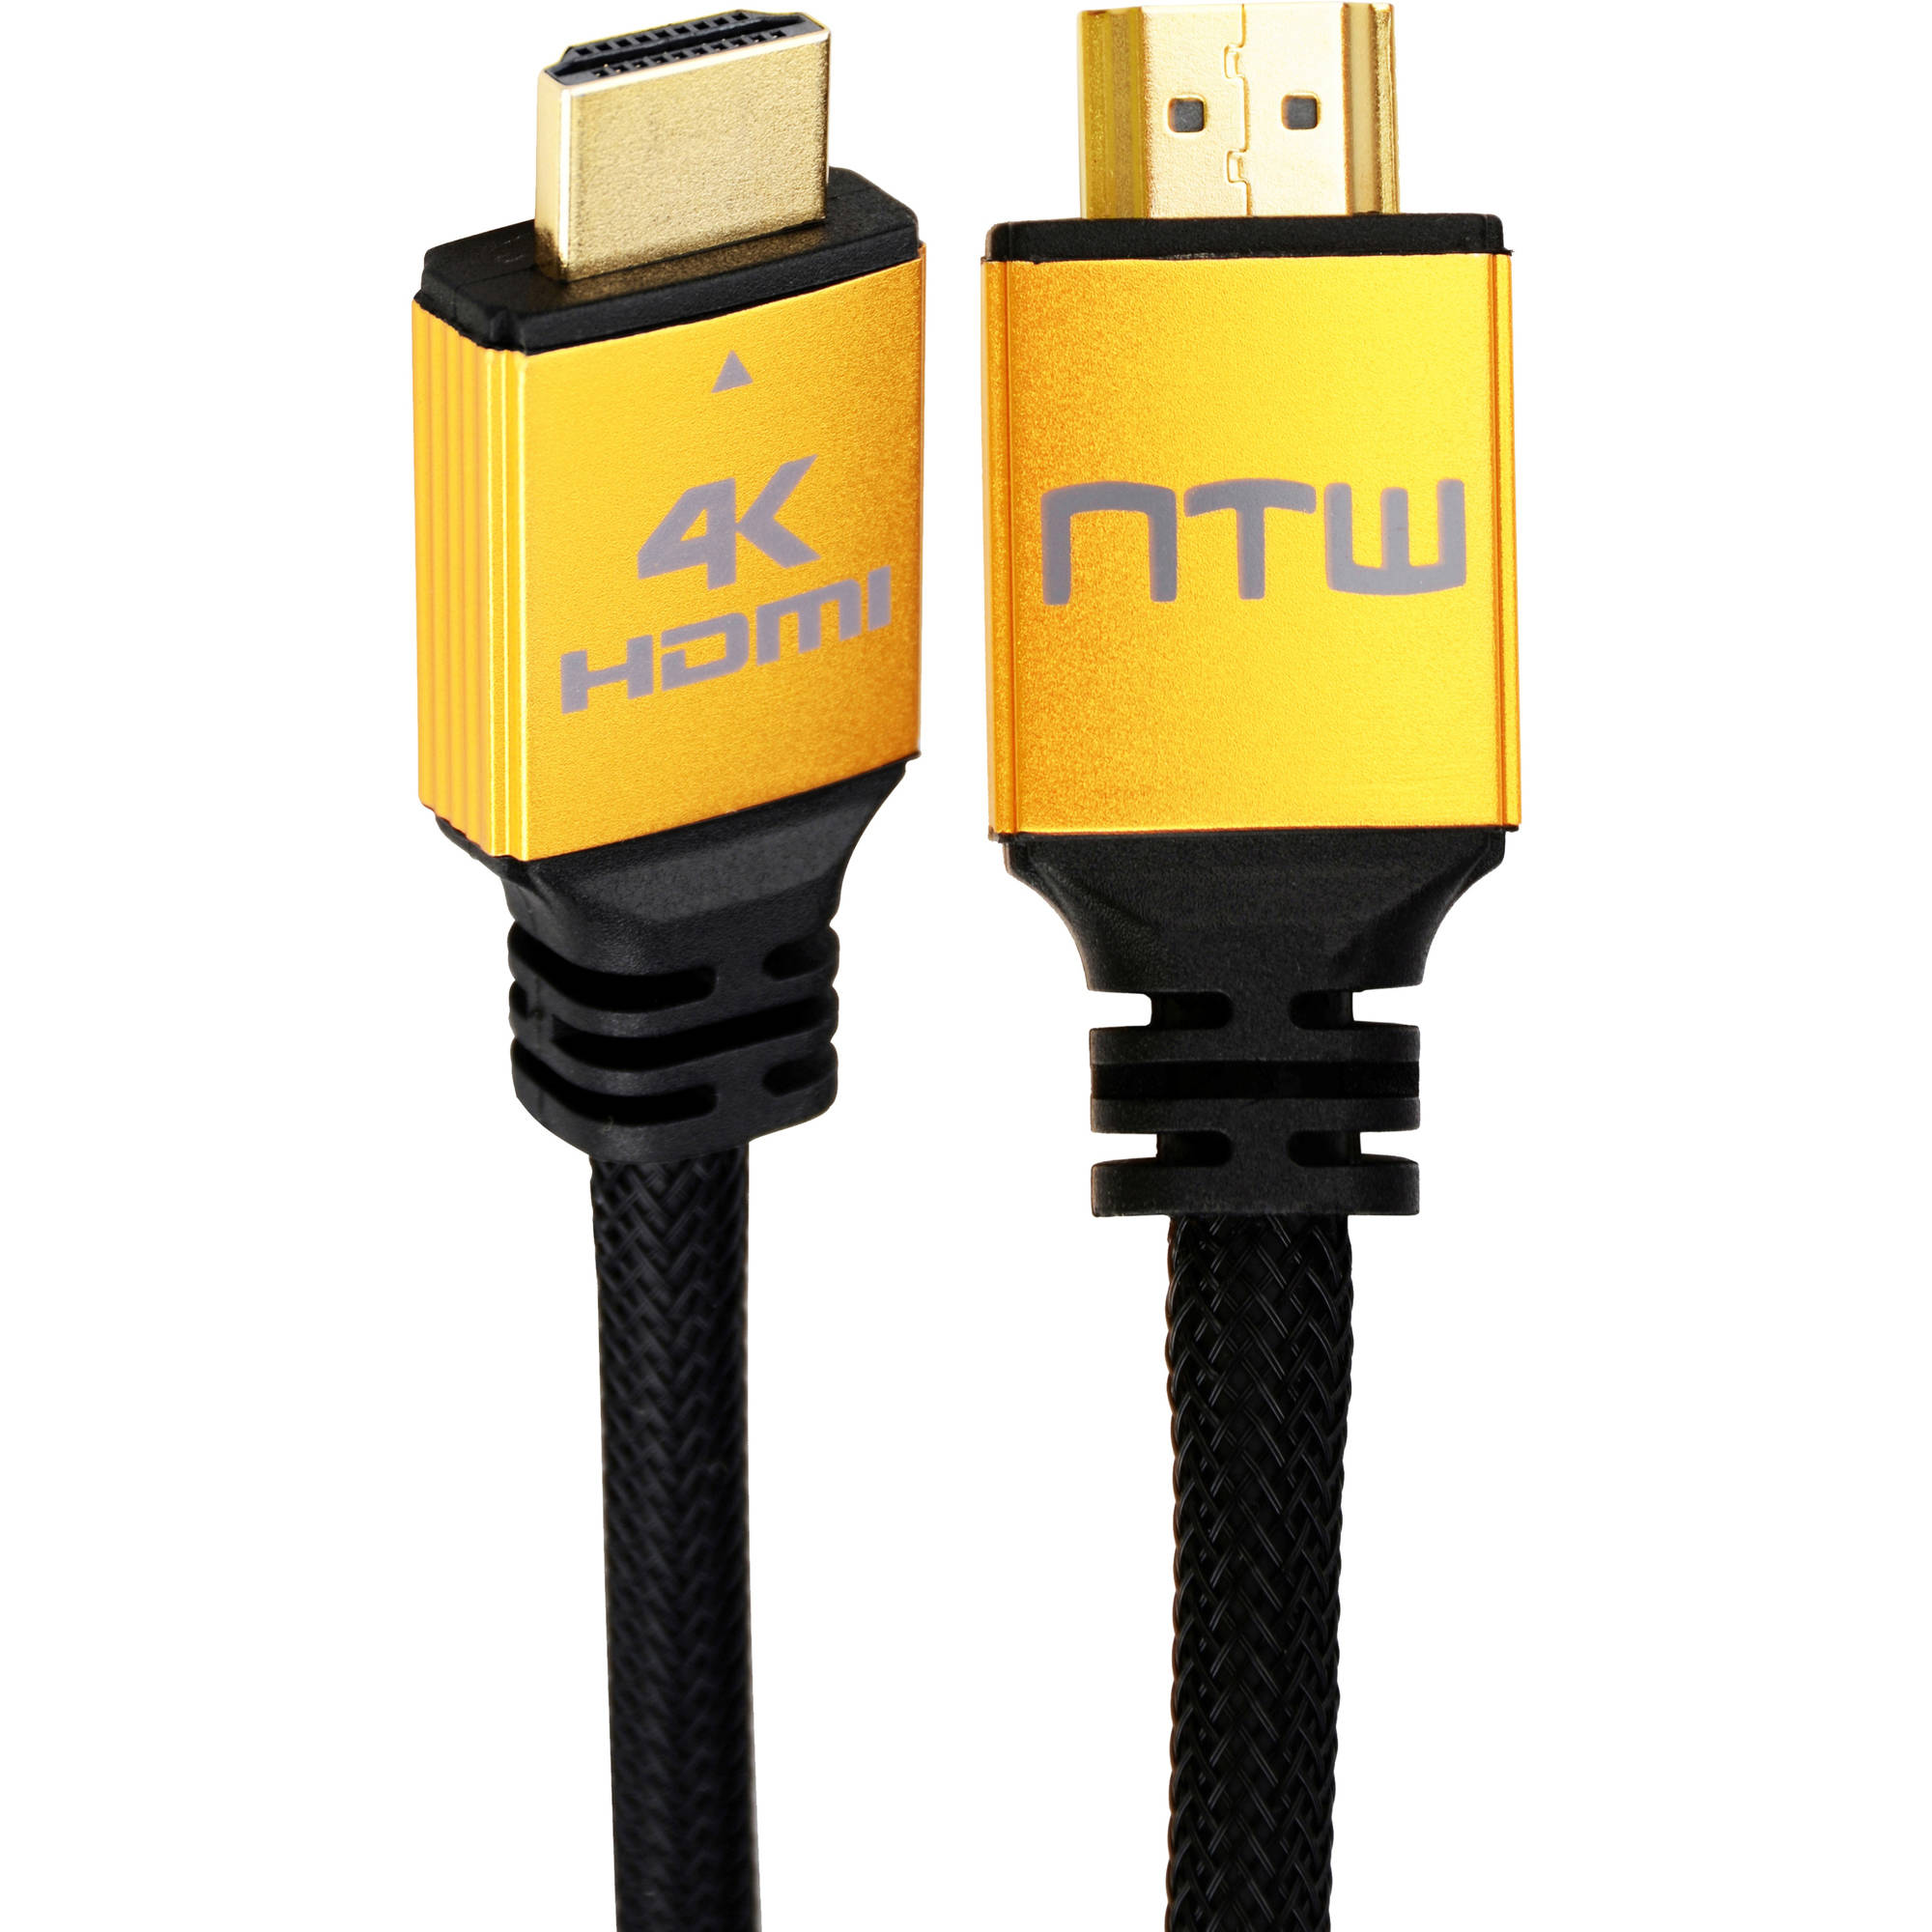 Ntw 6 12 Ultra Hd Pure Pro 4k High Speed Hdmi Cable